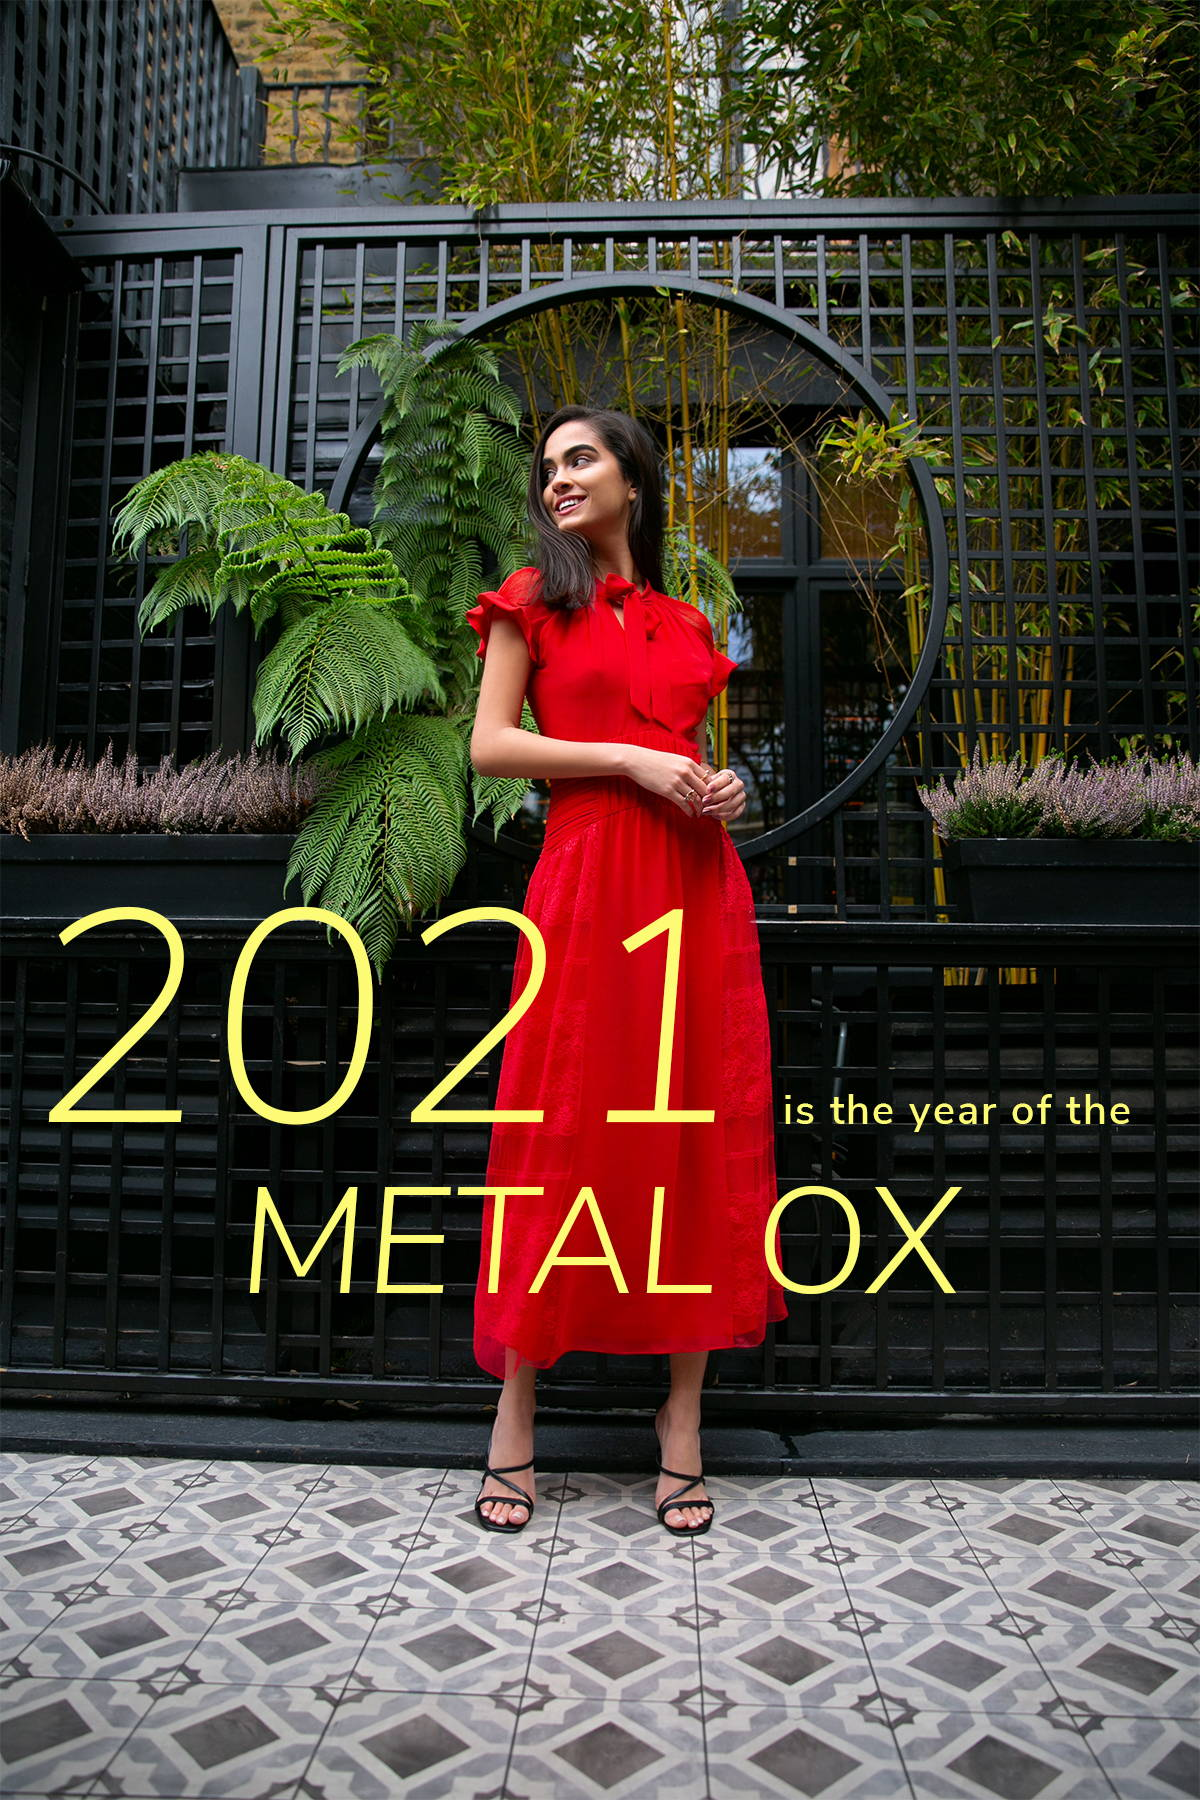 2021 is the year of the Metal Ox